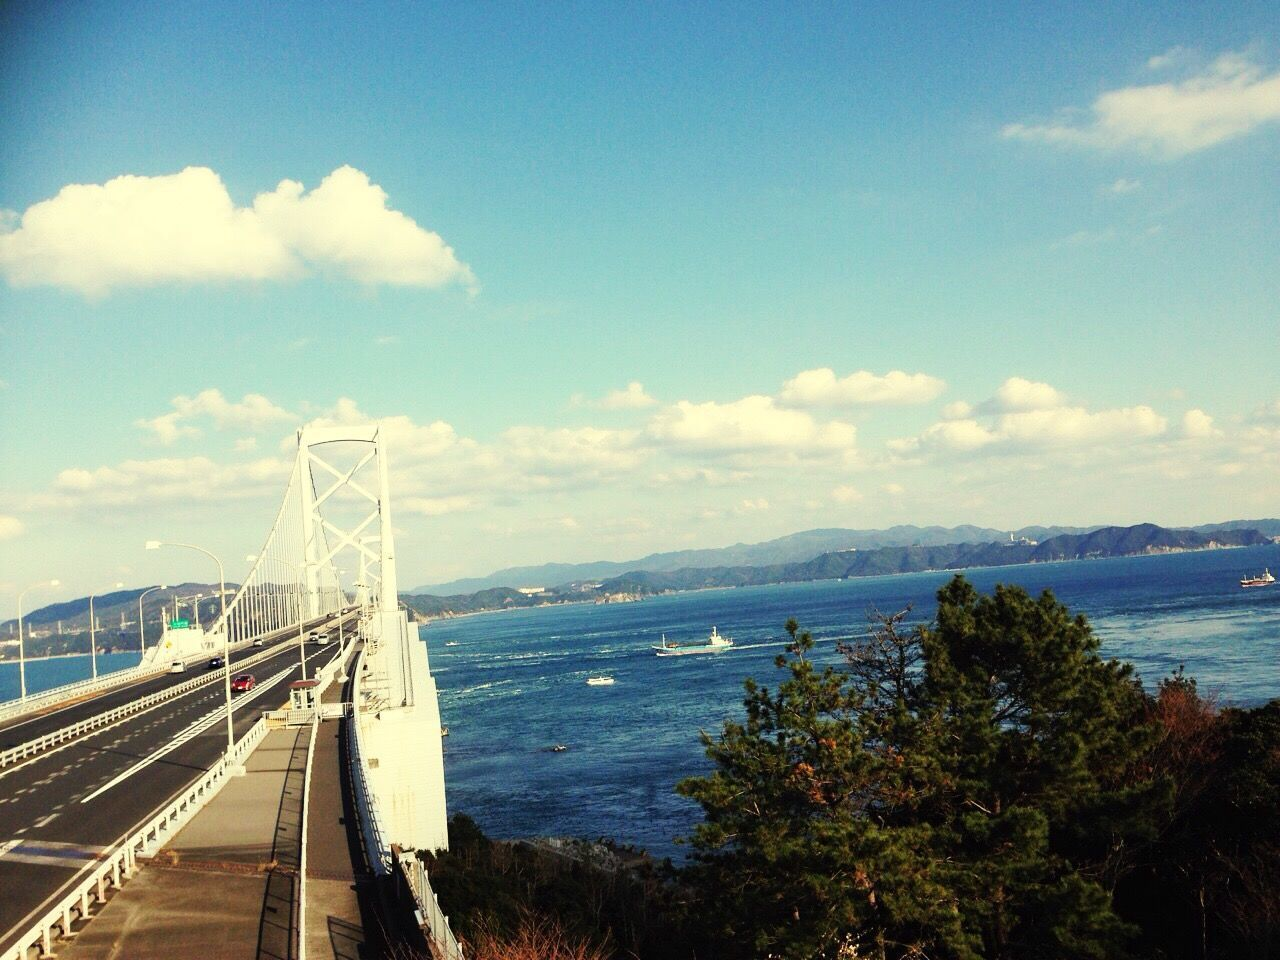 Sky Cloud - Sky Sea Transportation Water Connection Architecture Mountain Bridge - Man Made Structure Day Built Structure Suspension Bridge No People Outdoors Scenics Travel Destinations Road Bridge Nature Beauty In Nature Good Afternoon Make You Coffee The Great Outdoors - 2017 EyeEm Awards